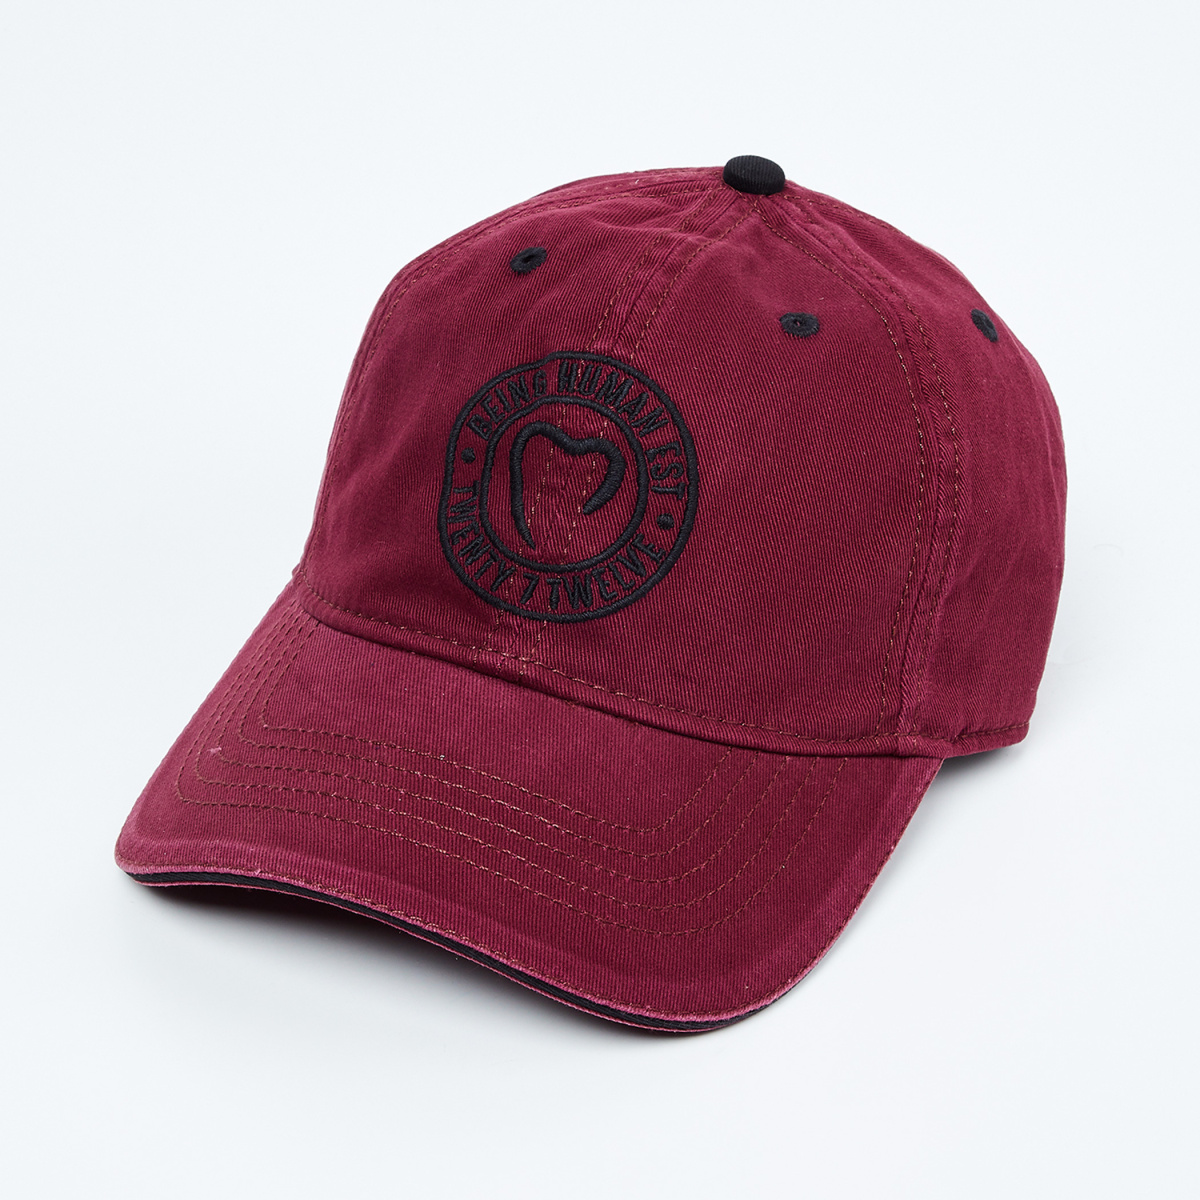 BEING HUMAN Embroidered Baseball Cap